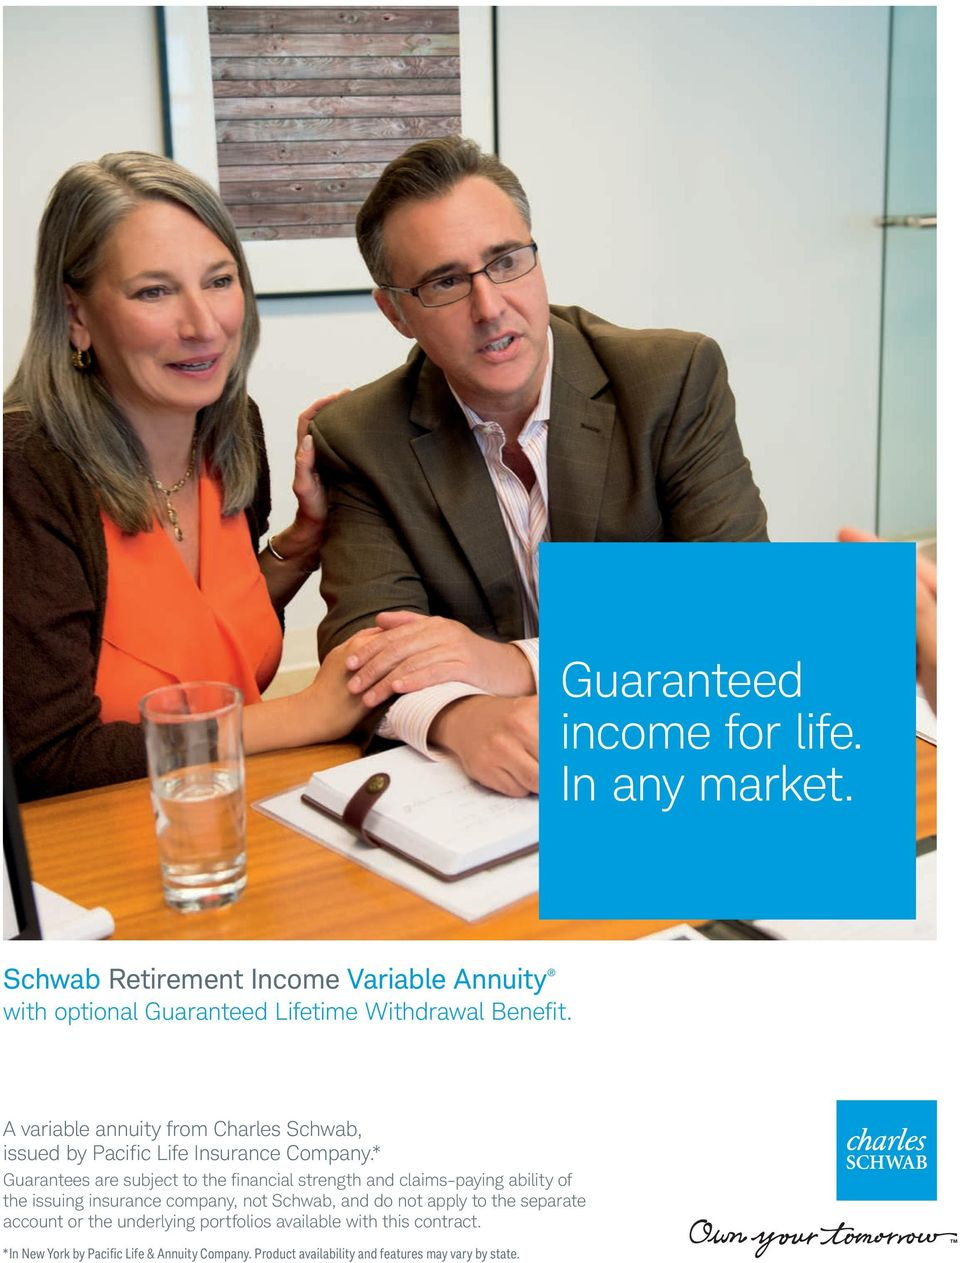 A variable annuity from Charles Schwab, issued by Pacific Life Insurance Company.